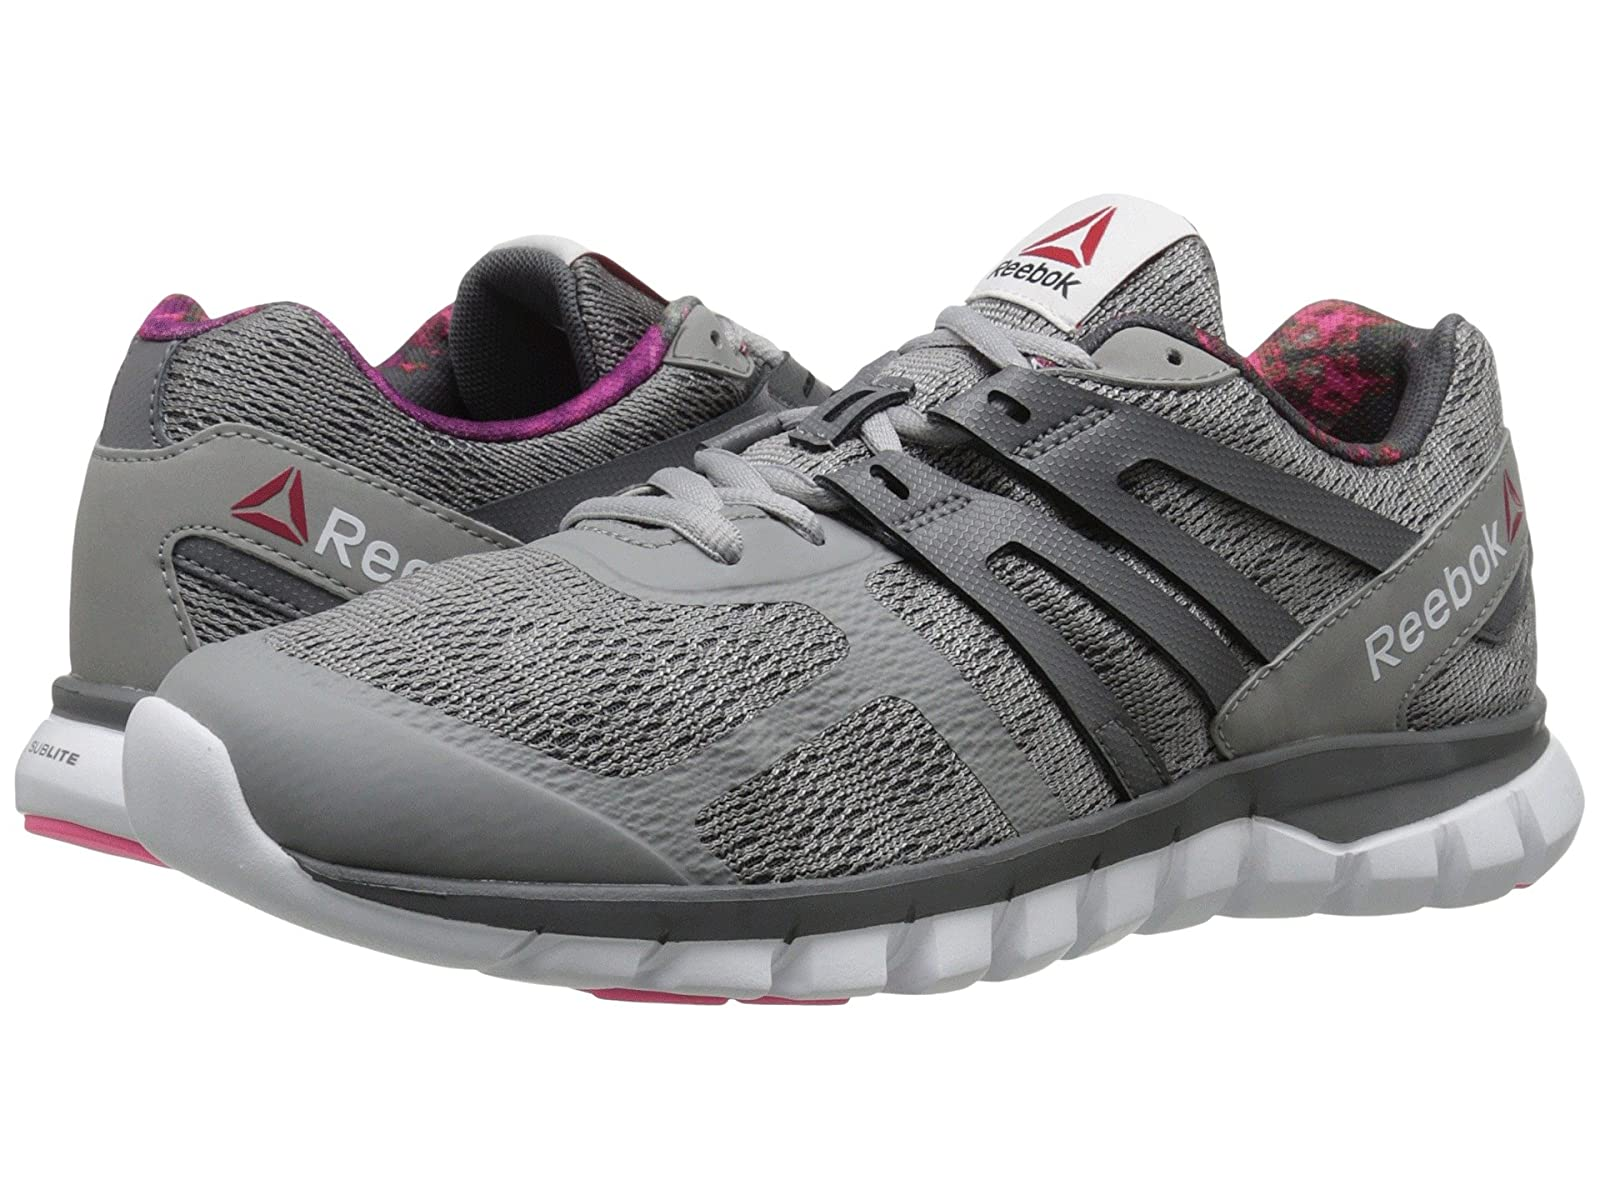 Reebok Sublite XT Cushion MTCheap and distinctive eye-catching shoes